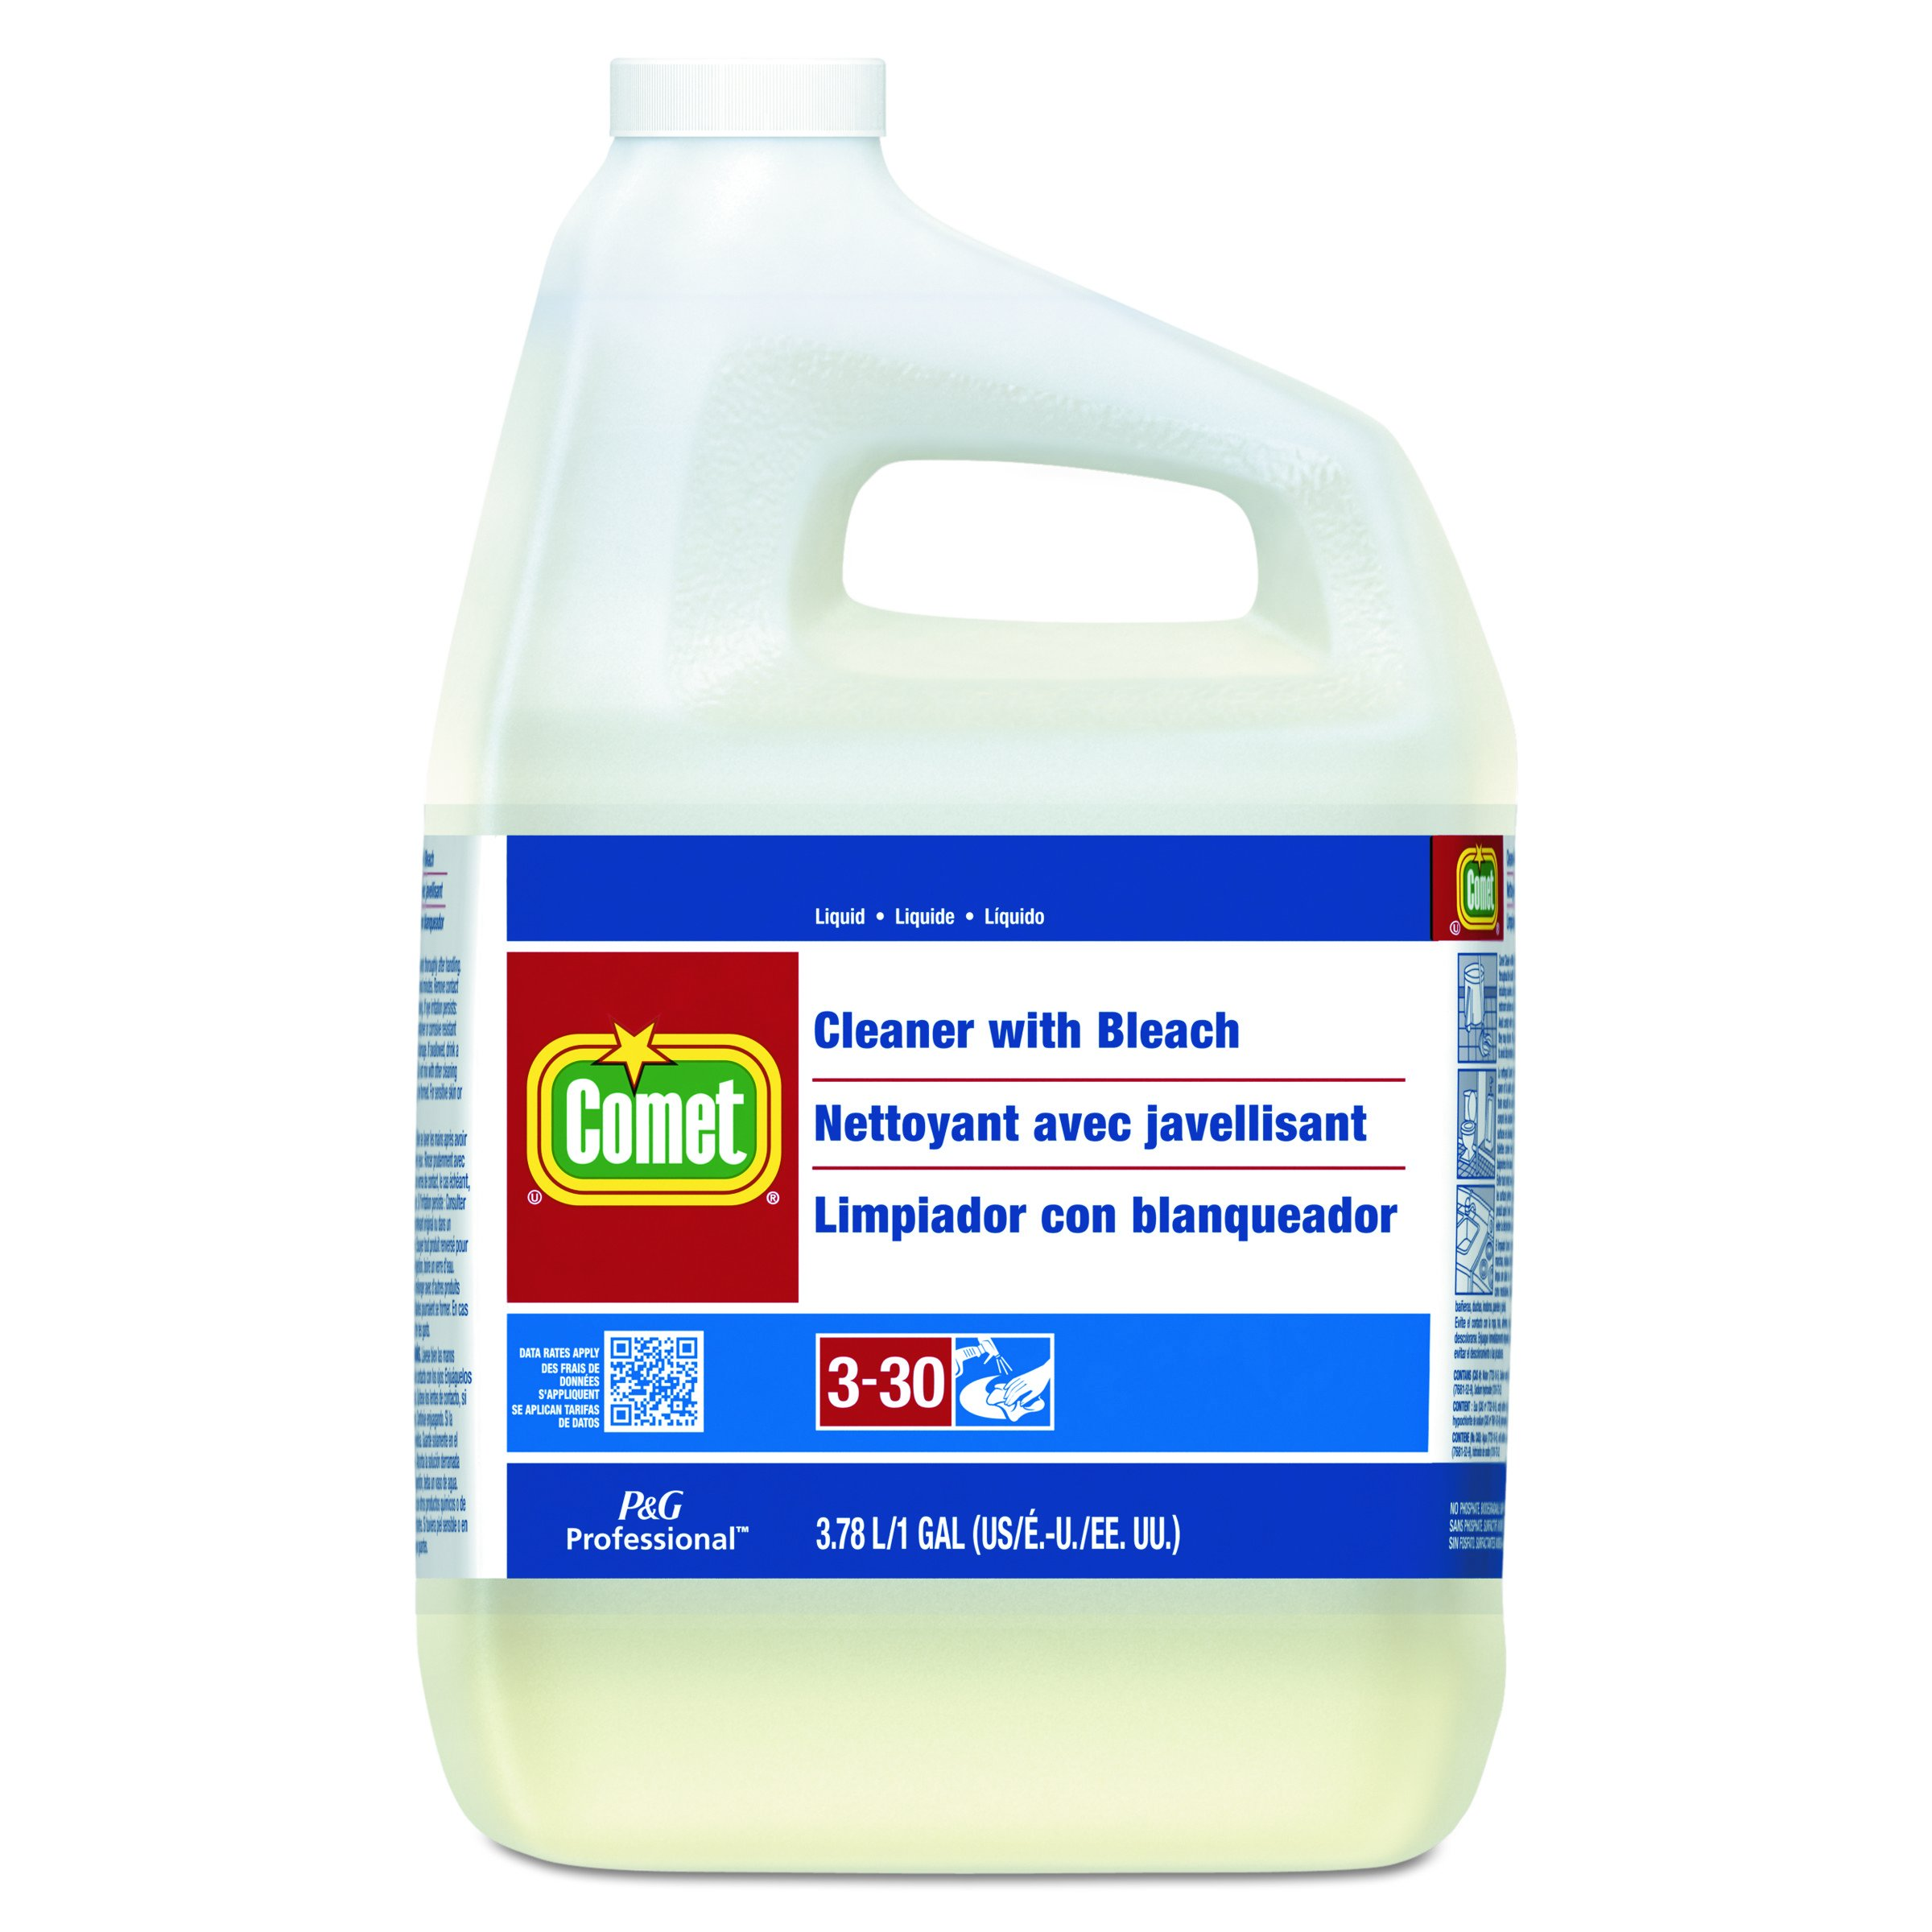 Comet Professional Cleaner with Bleach, 1 Gallon (Case of 3) by Comet® Professional (Image #1)